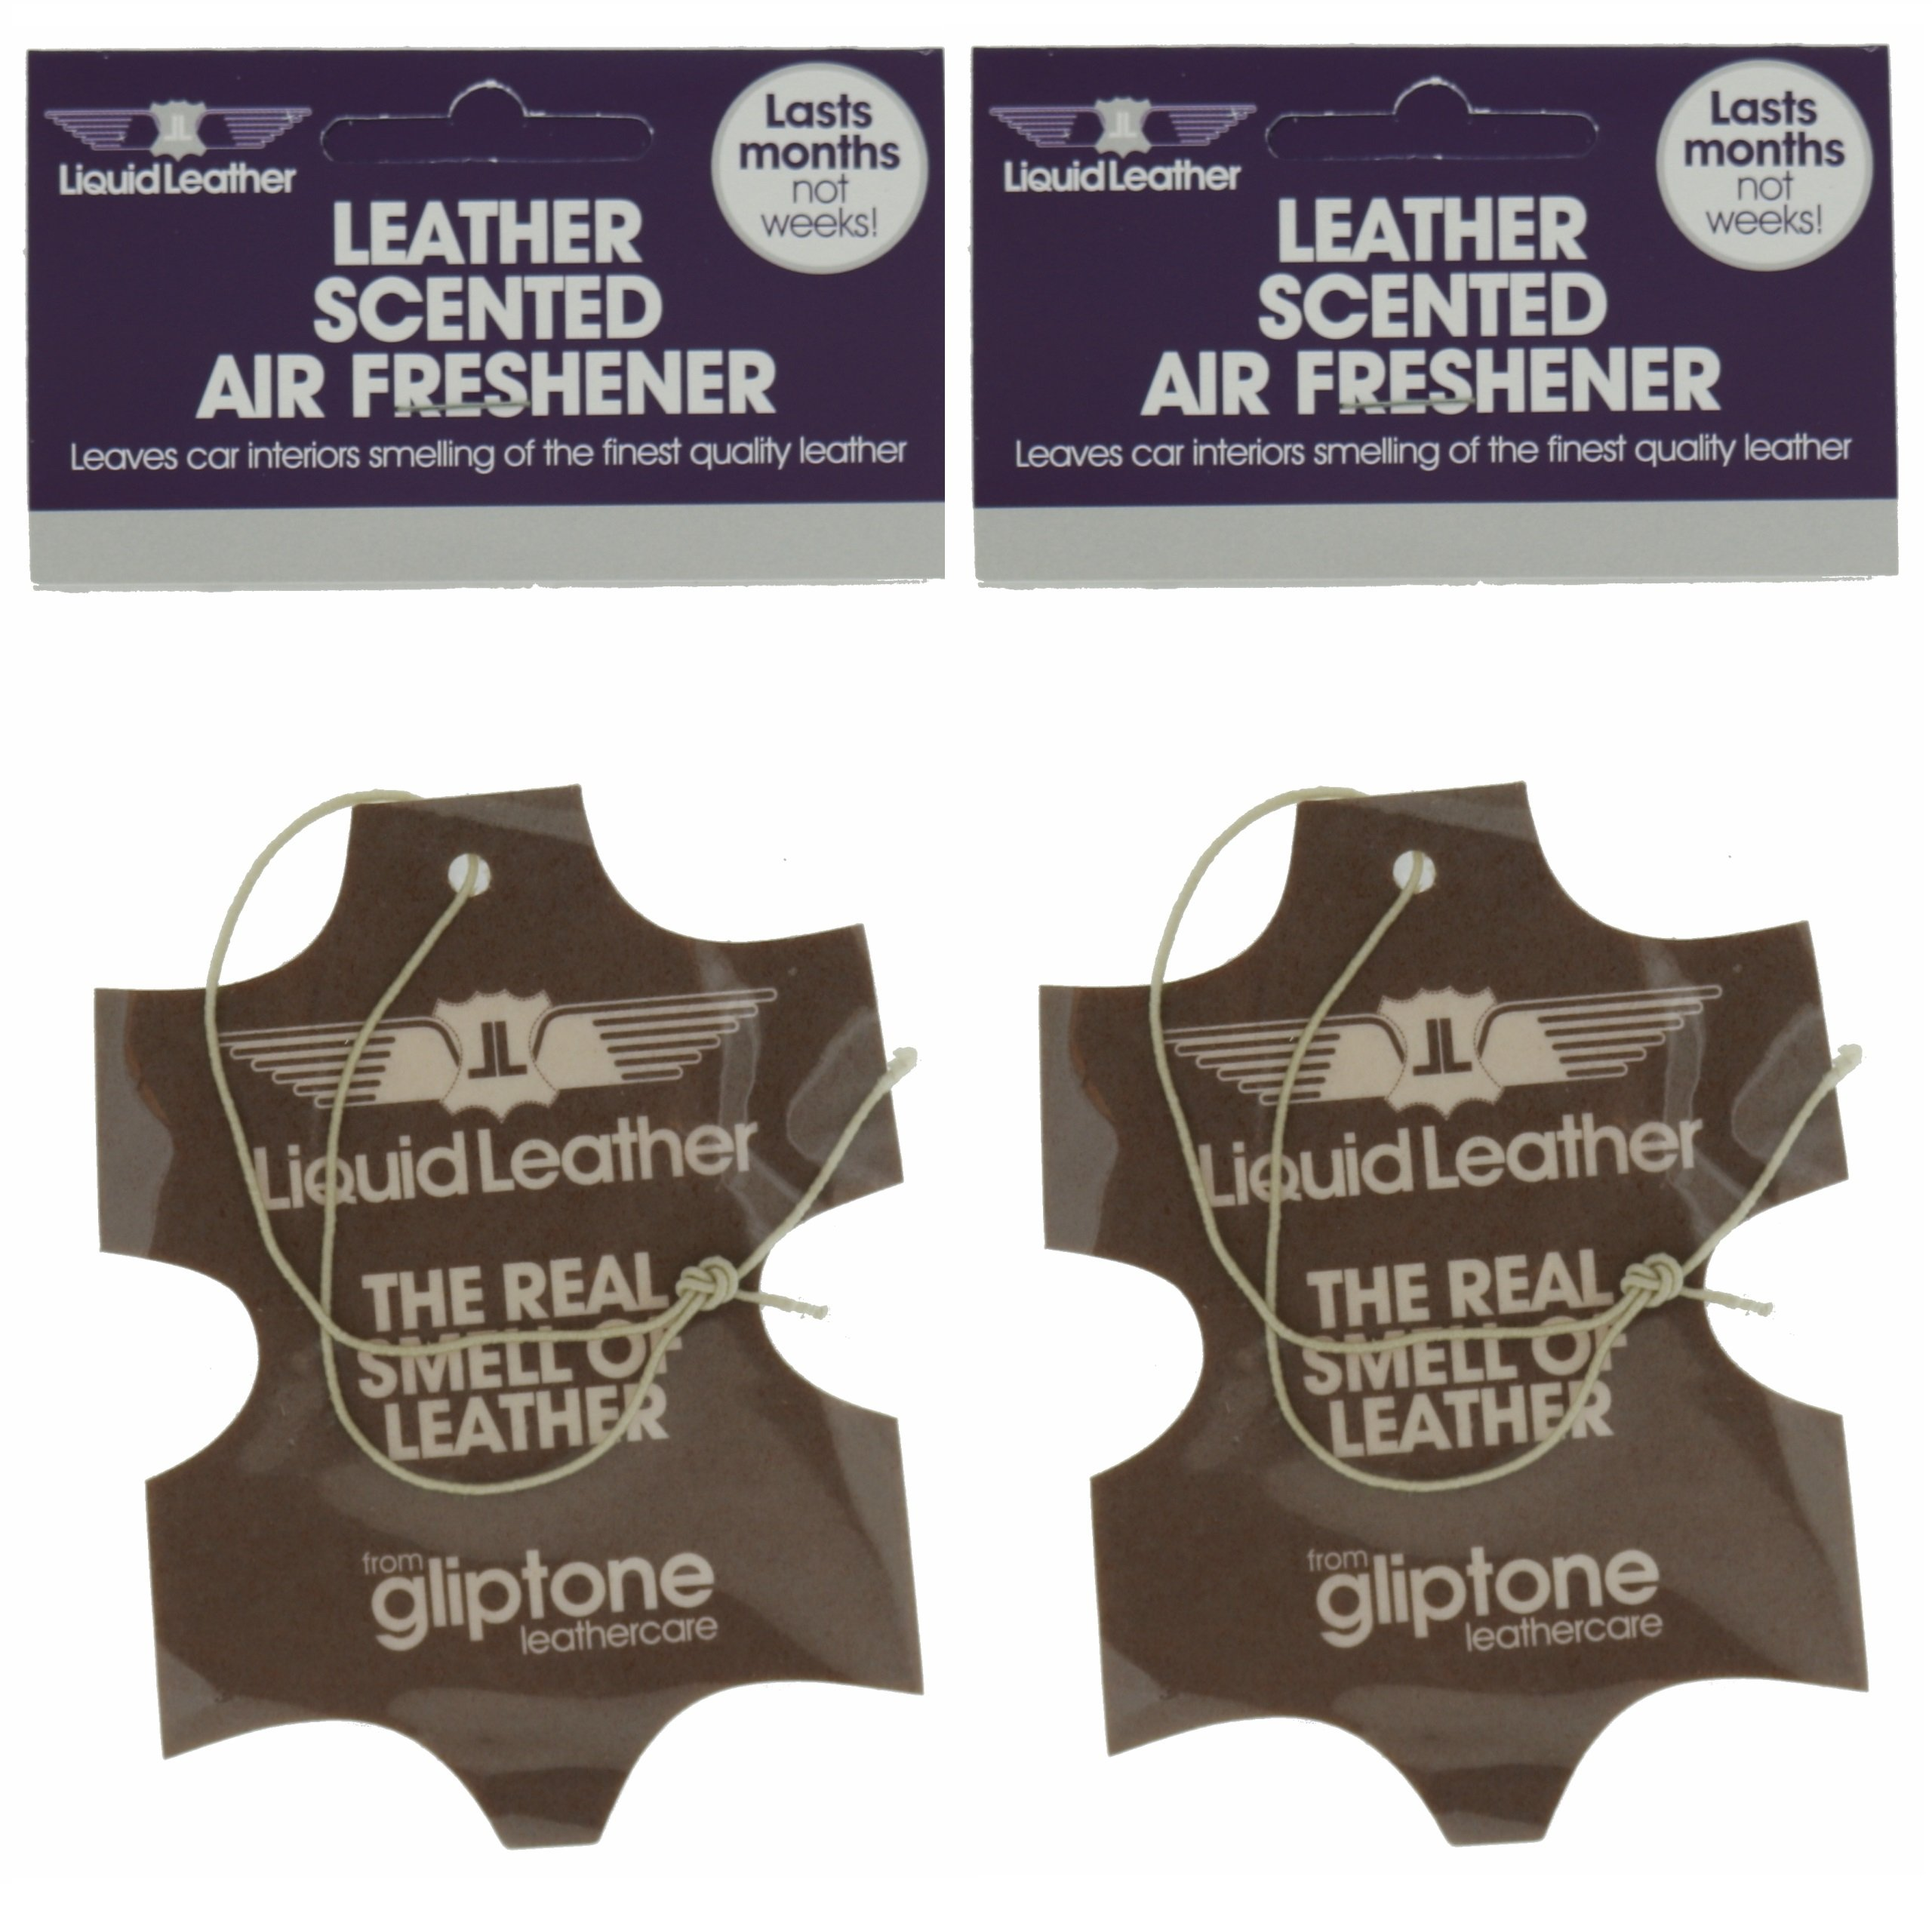 Gliptone Liquid Leather Scented Air Freshener - Pack of Two - SC746